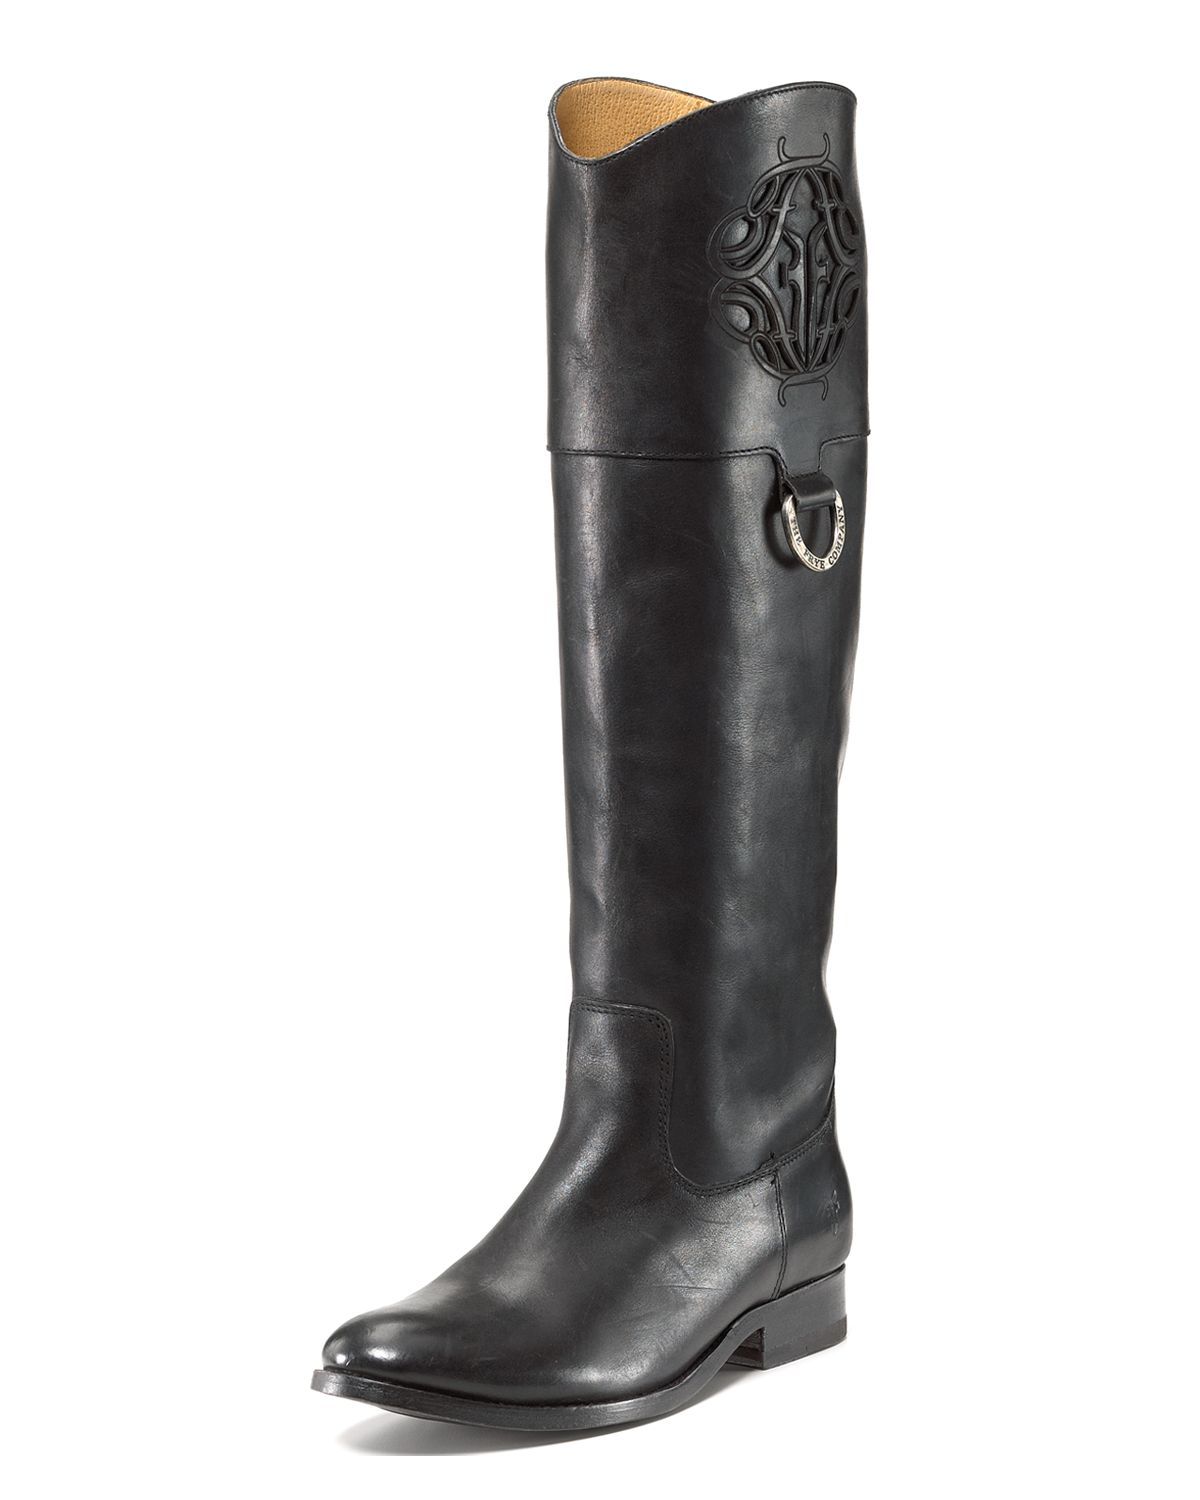 frye quotmelissaquot riding boots in black lyst